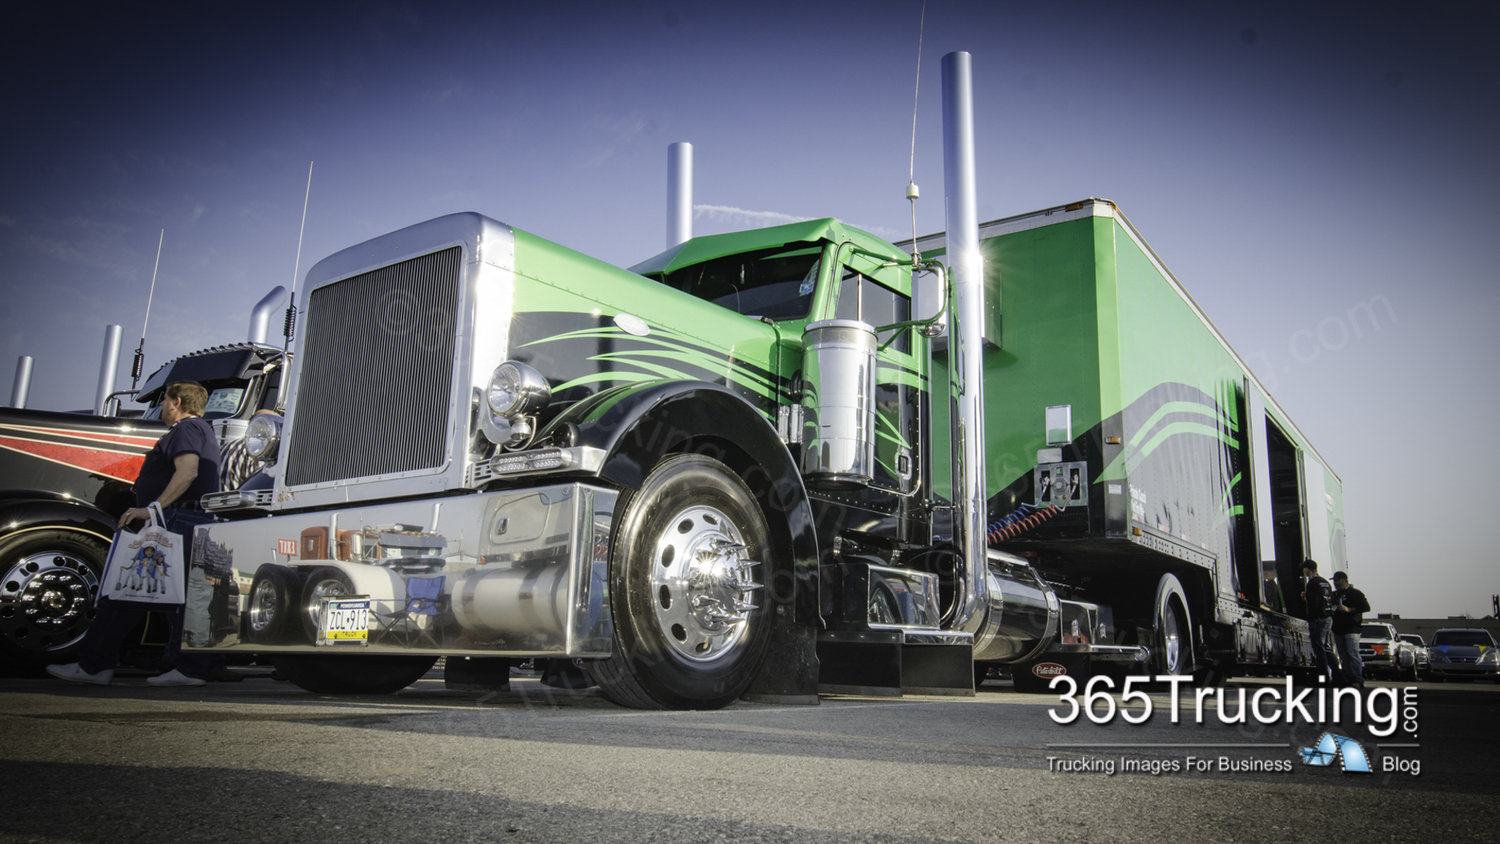 How to Use Video In Your #DriverRecruiting Strategy #Trucking @HightowerAgency